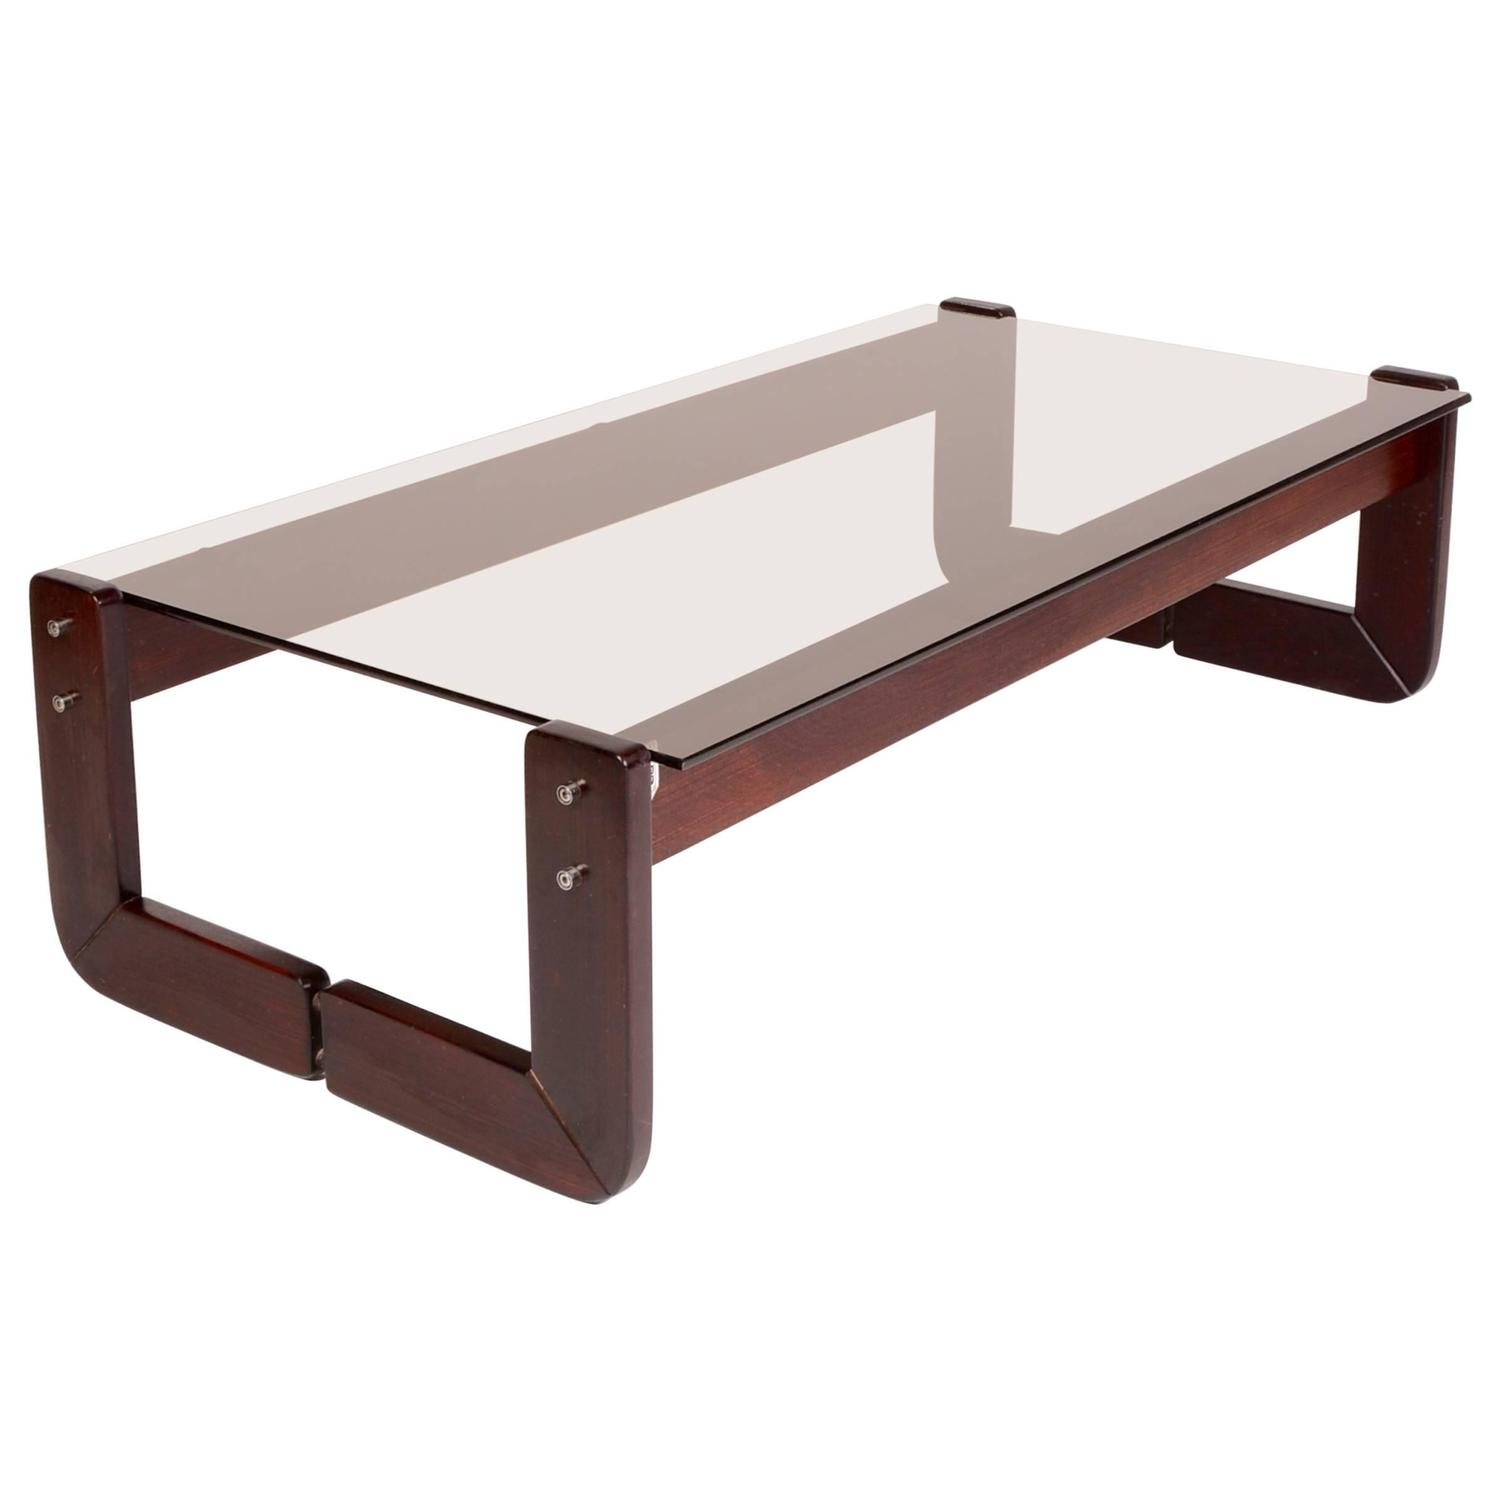 Percival Lafer Rosewood And Smoked Glass Coffee Table At